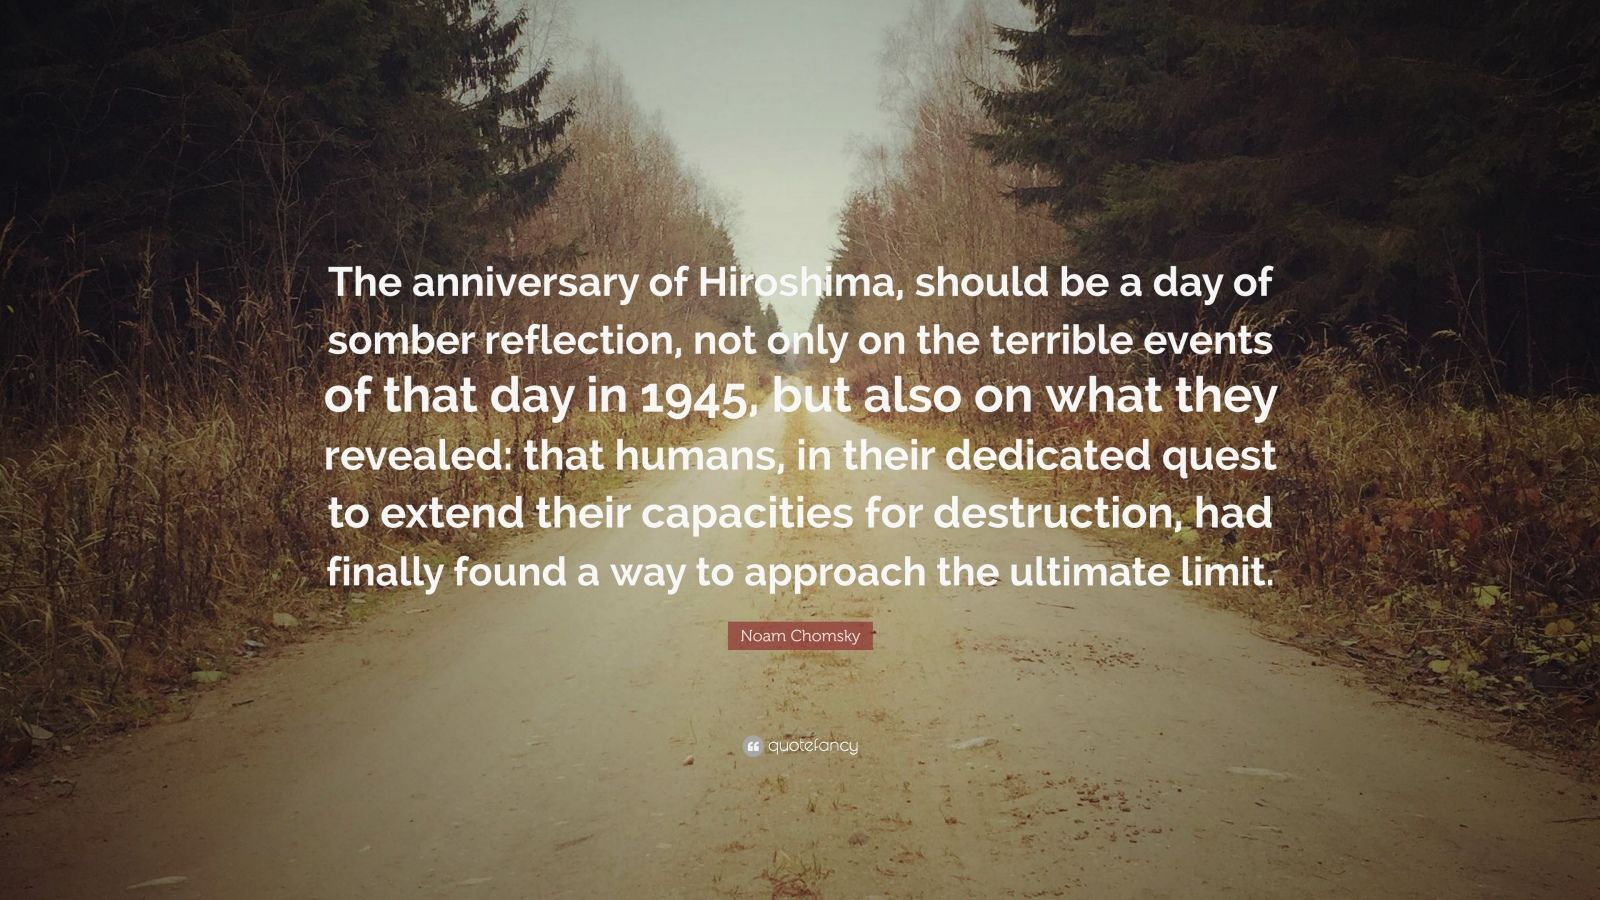 "Noam Chomsky Quote: ""The anniversary of Hiroshima, should be a day of somber reflection, not only on the terrible events of that day in 1945, but also on what they revealed: that humans, in their dedicated quest to extend their capacities for destruction, had finally found a way to approach the ultimate limit."""